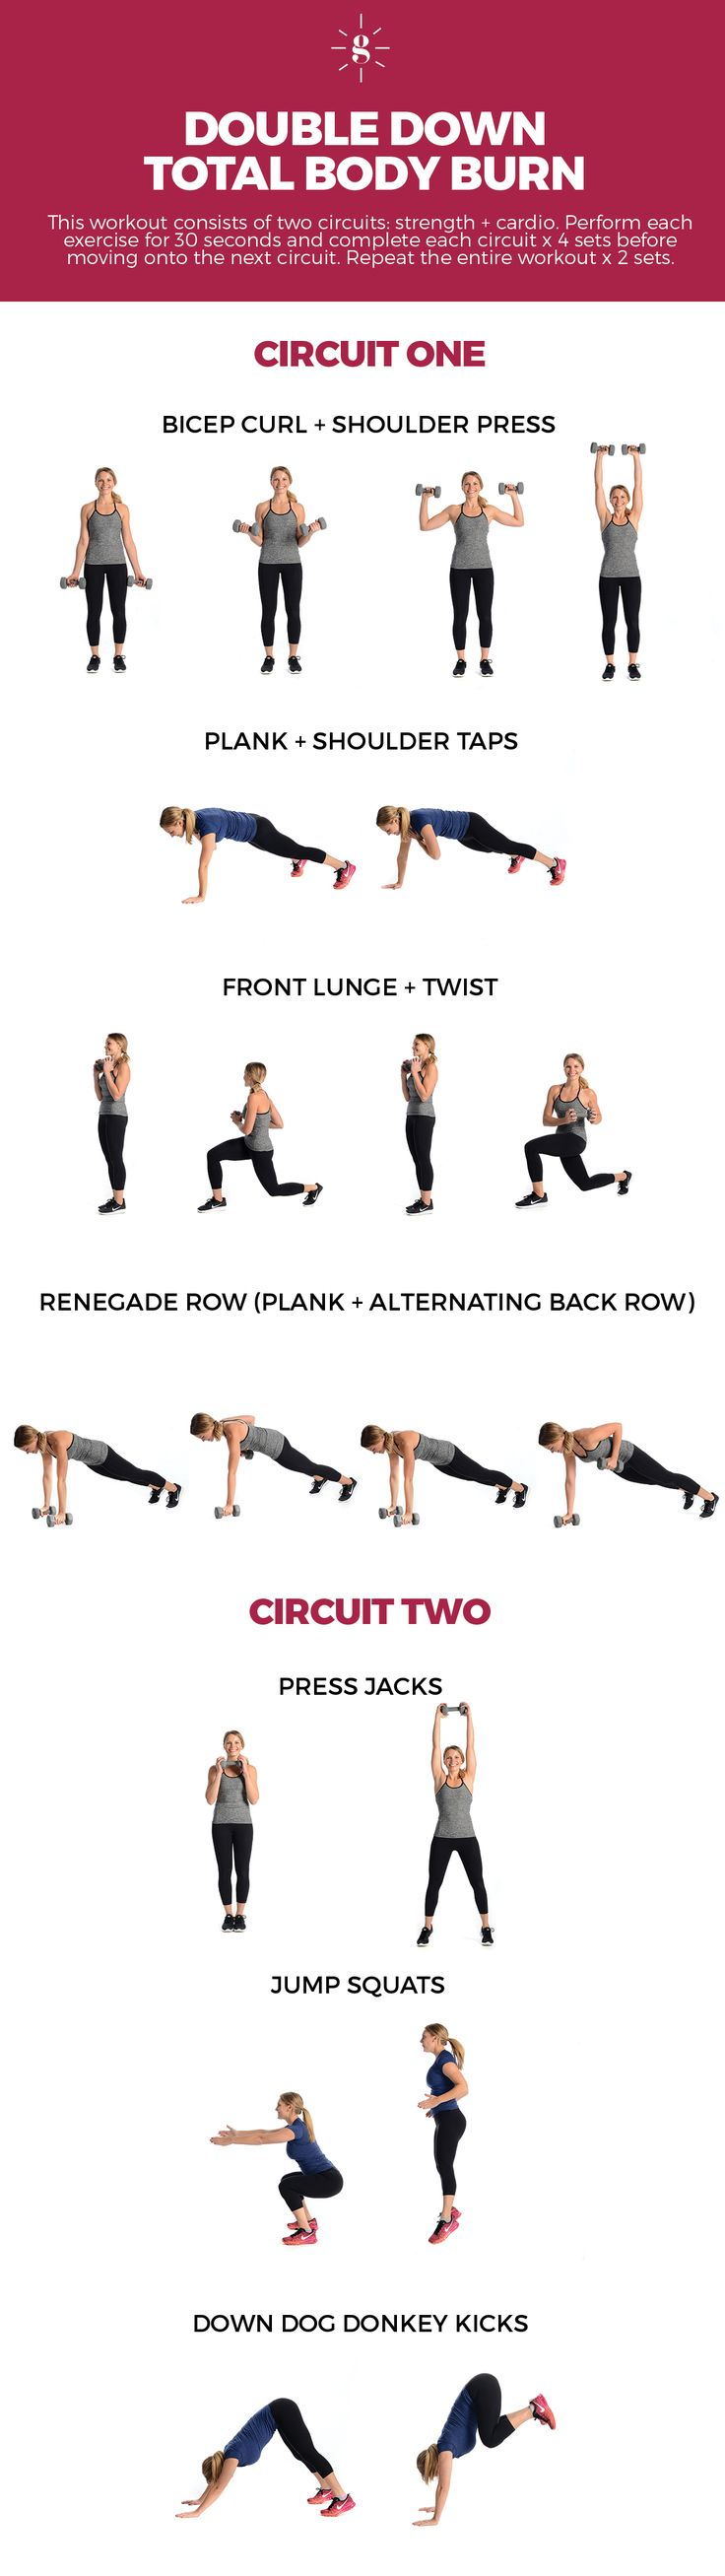 Get a full body workout in in just 30 minutes with this Double Down Total Body Burn Workout! It combines full body strength training with cardio so that you get the biggest bang for your buck all in under 30!